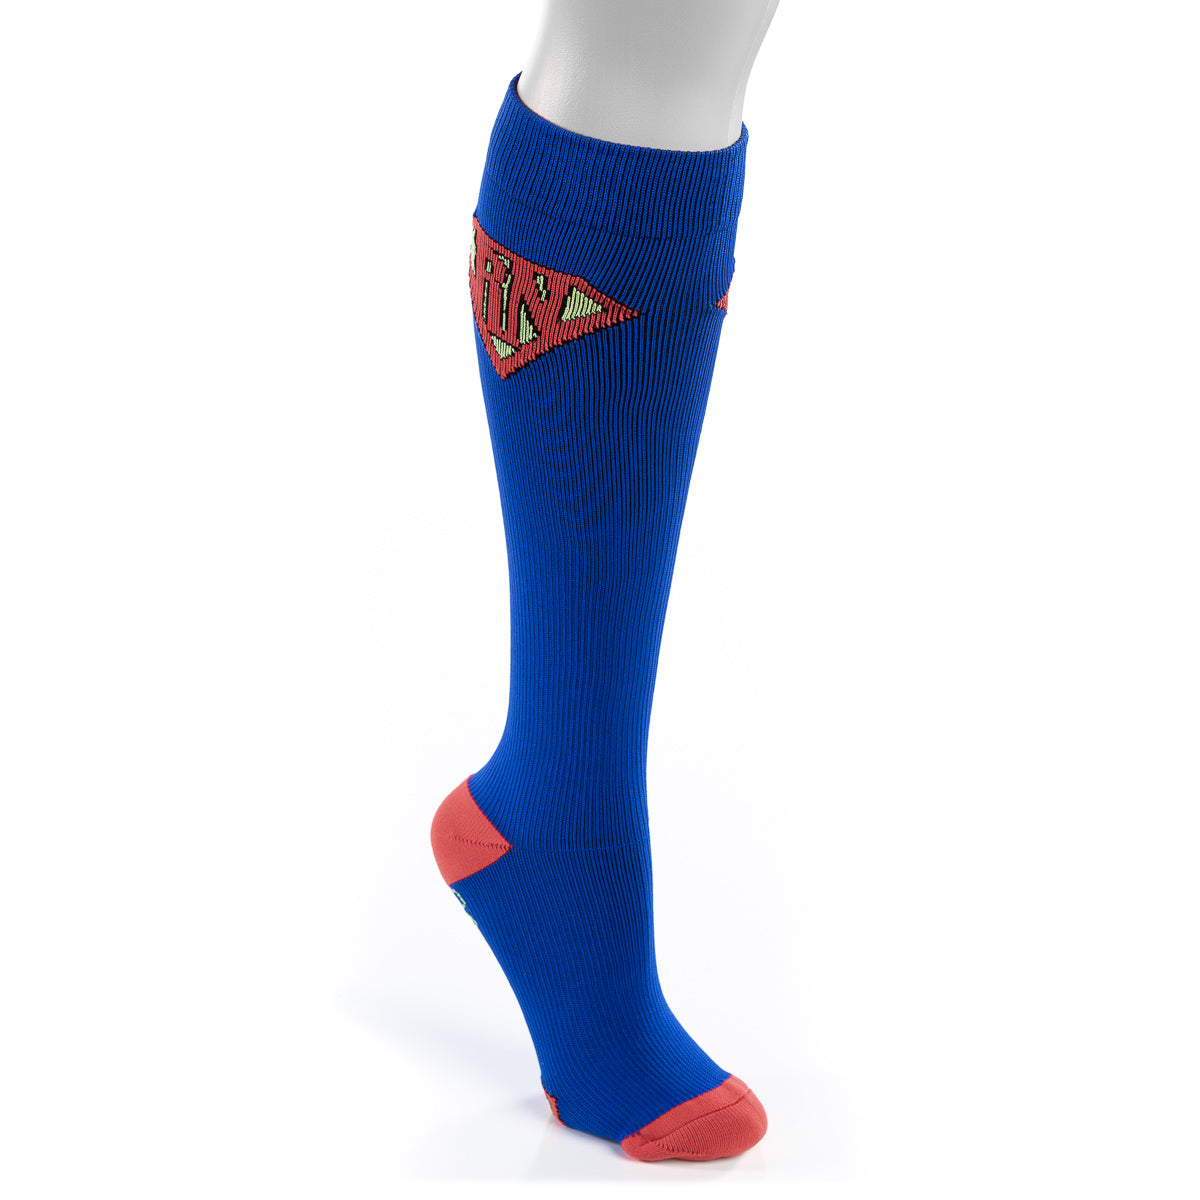 Super Nurse Compression Socks